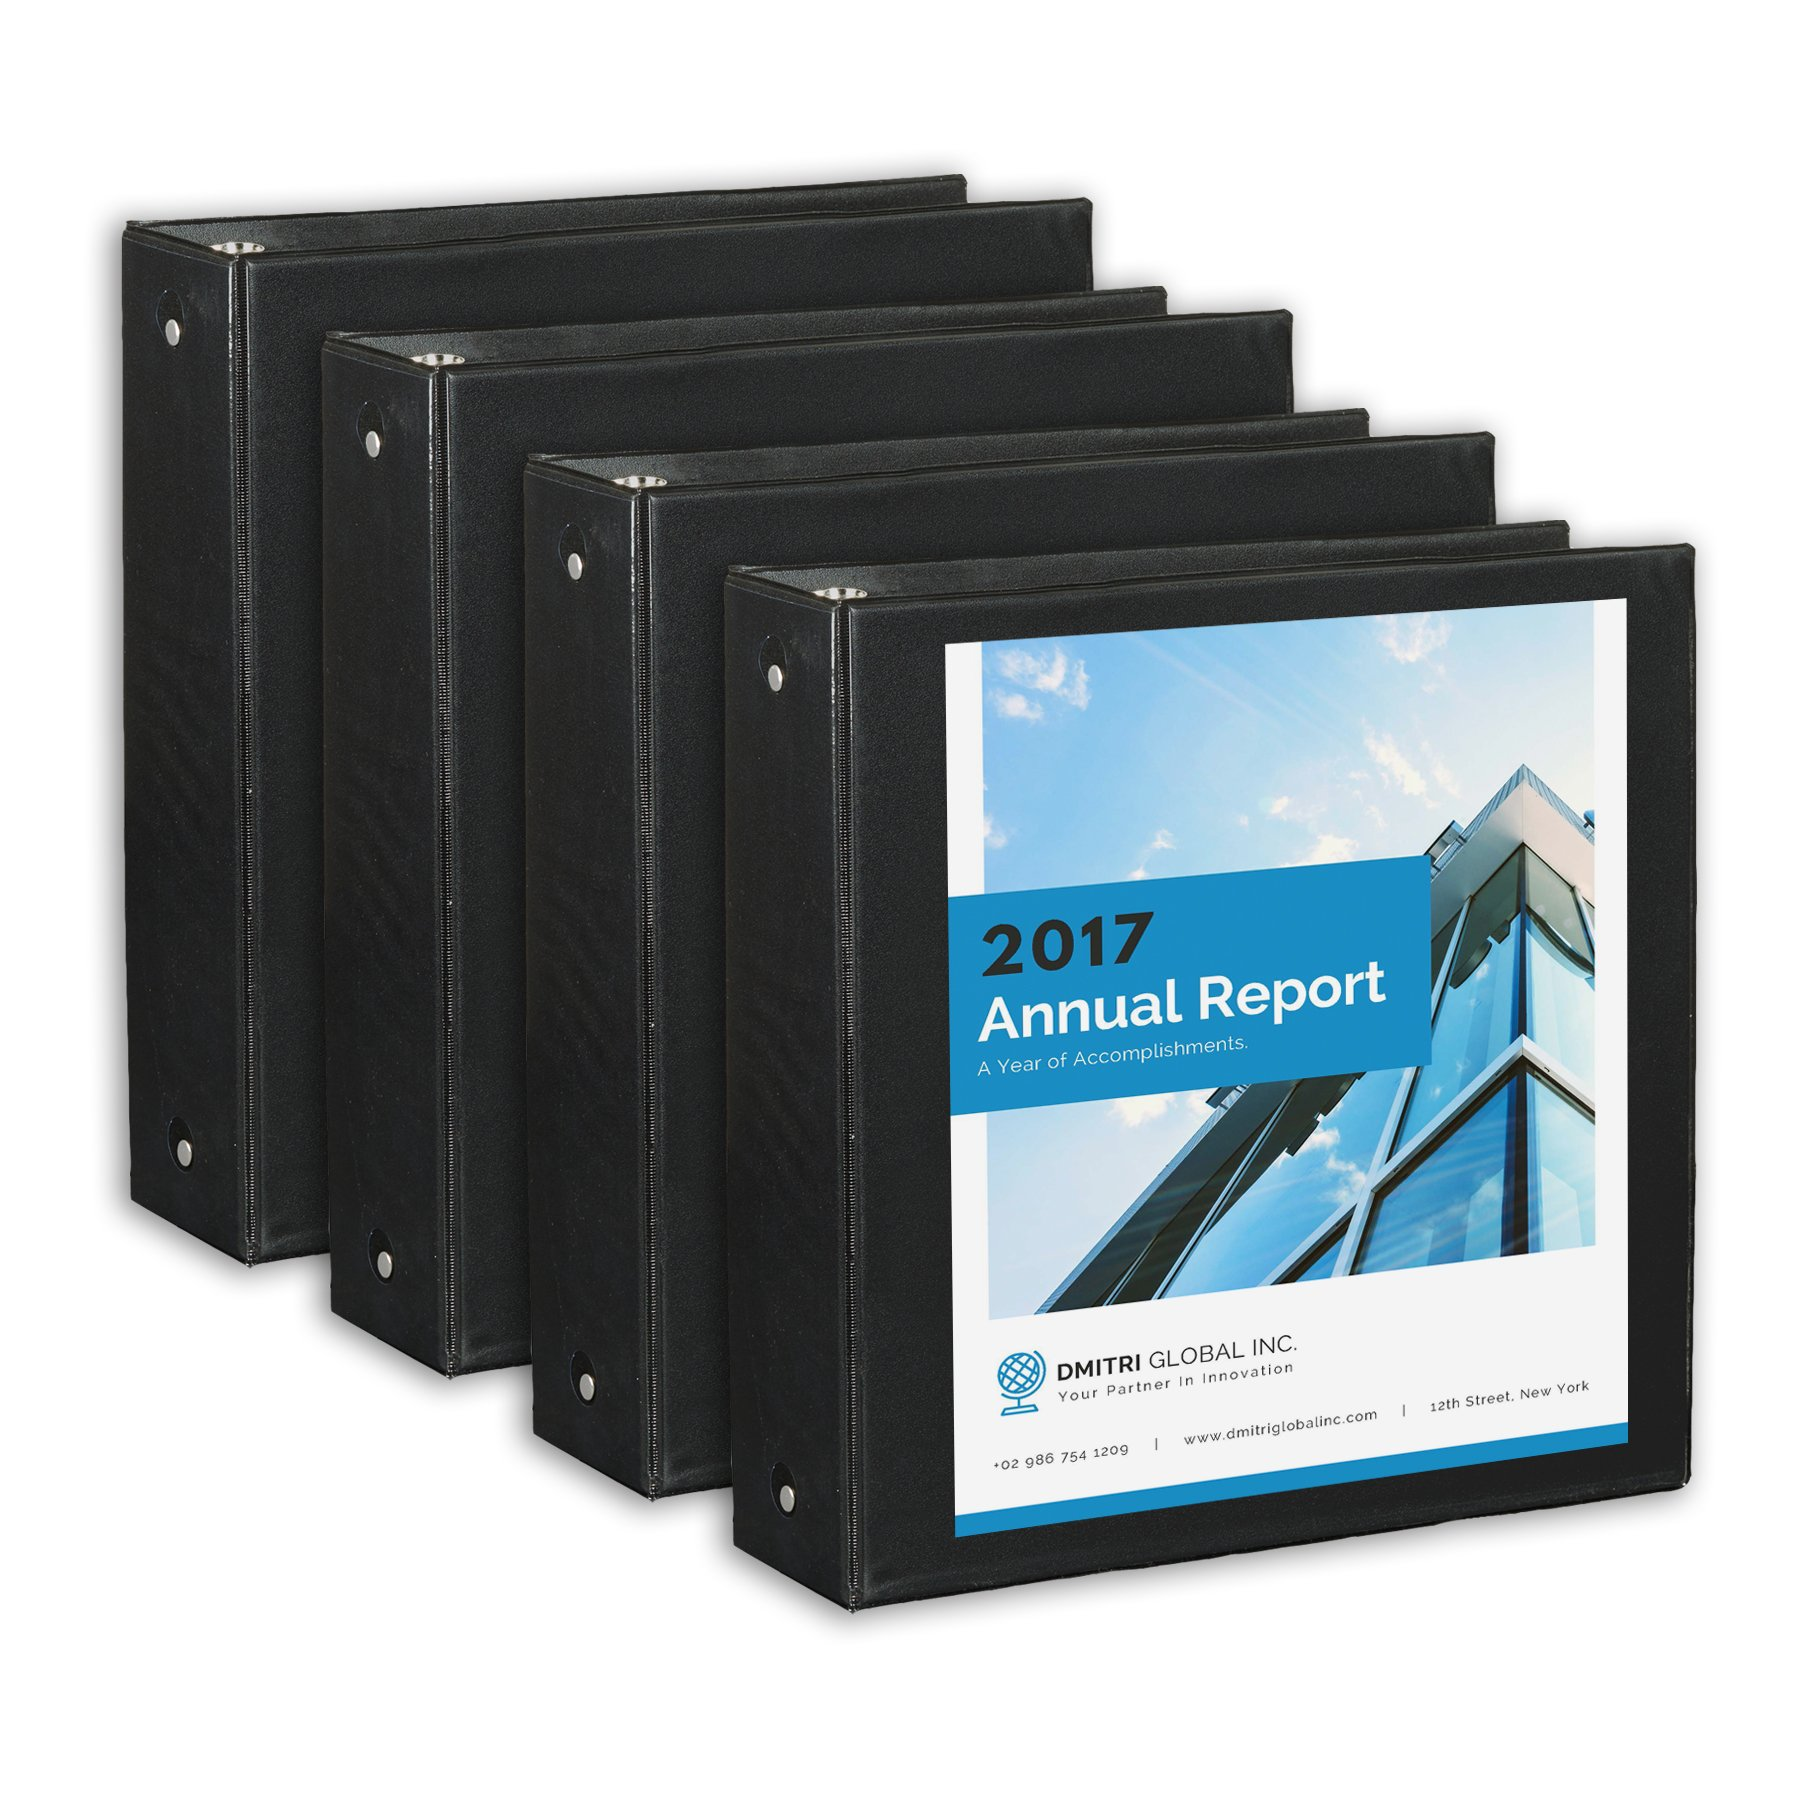 4 Pack 2'' 3-Ring Binders, Rugged Design for Home, Office, and School-for 8.5'' x 11'' Paper, 4 Binders (Black)